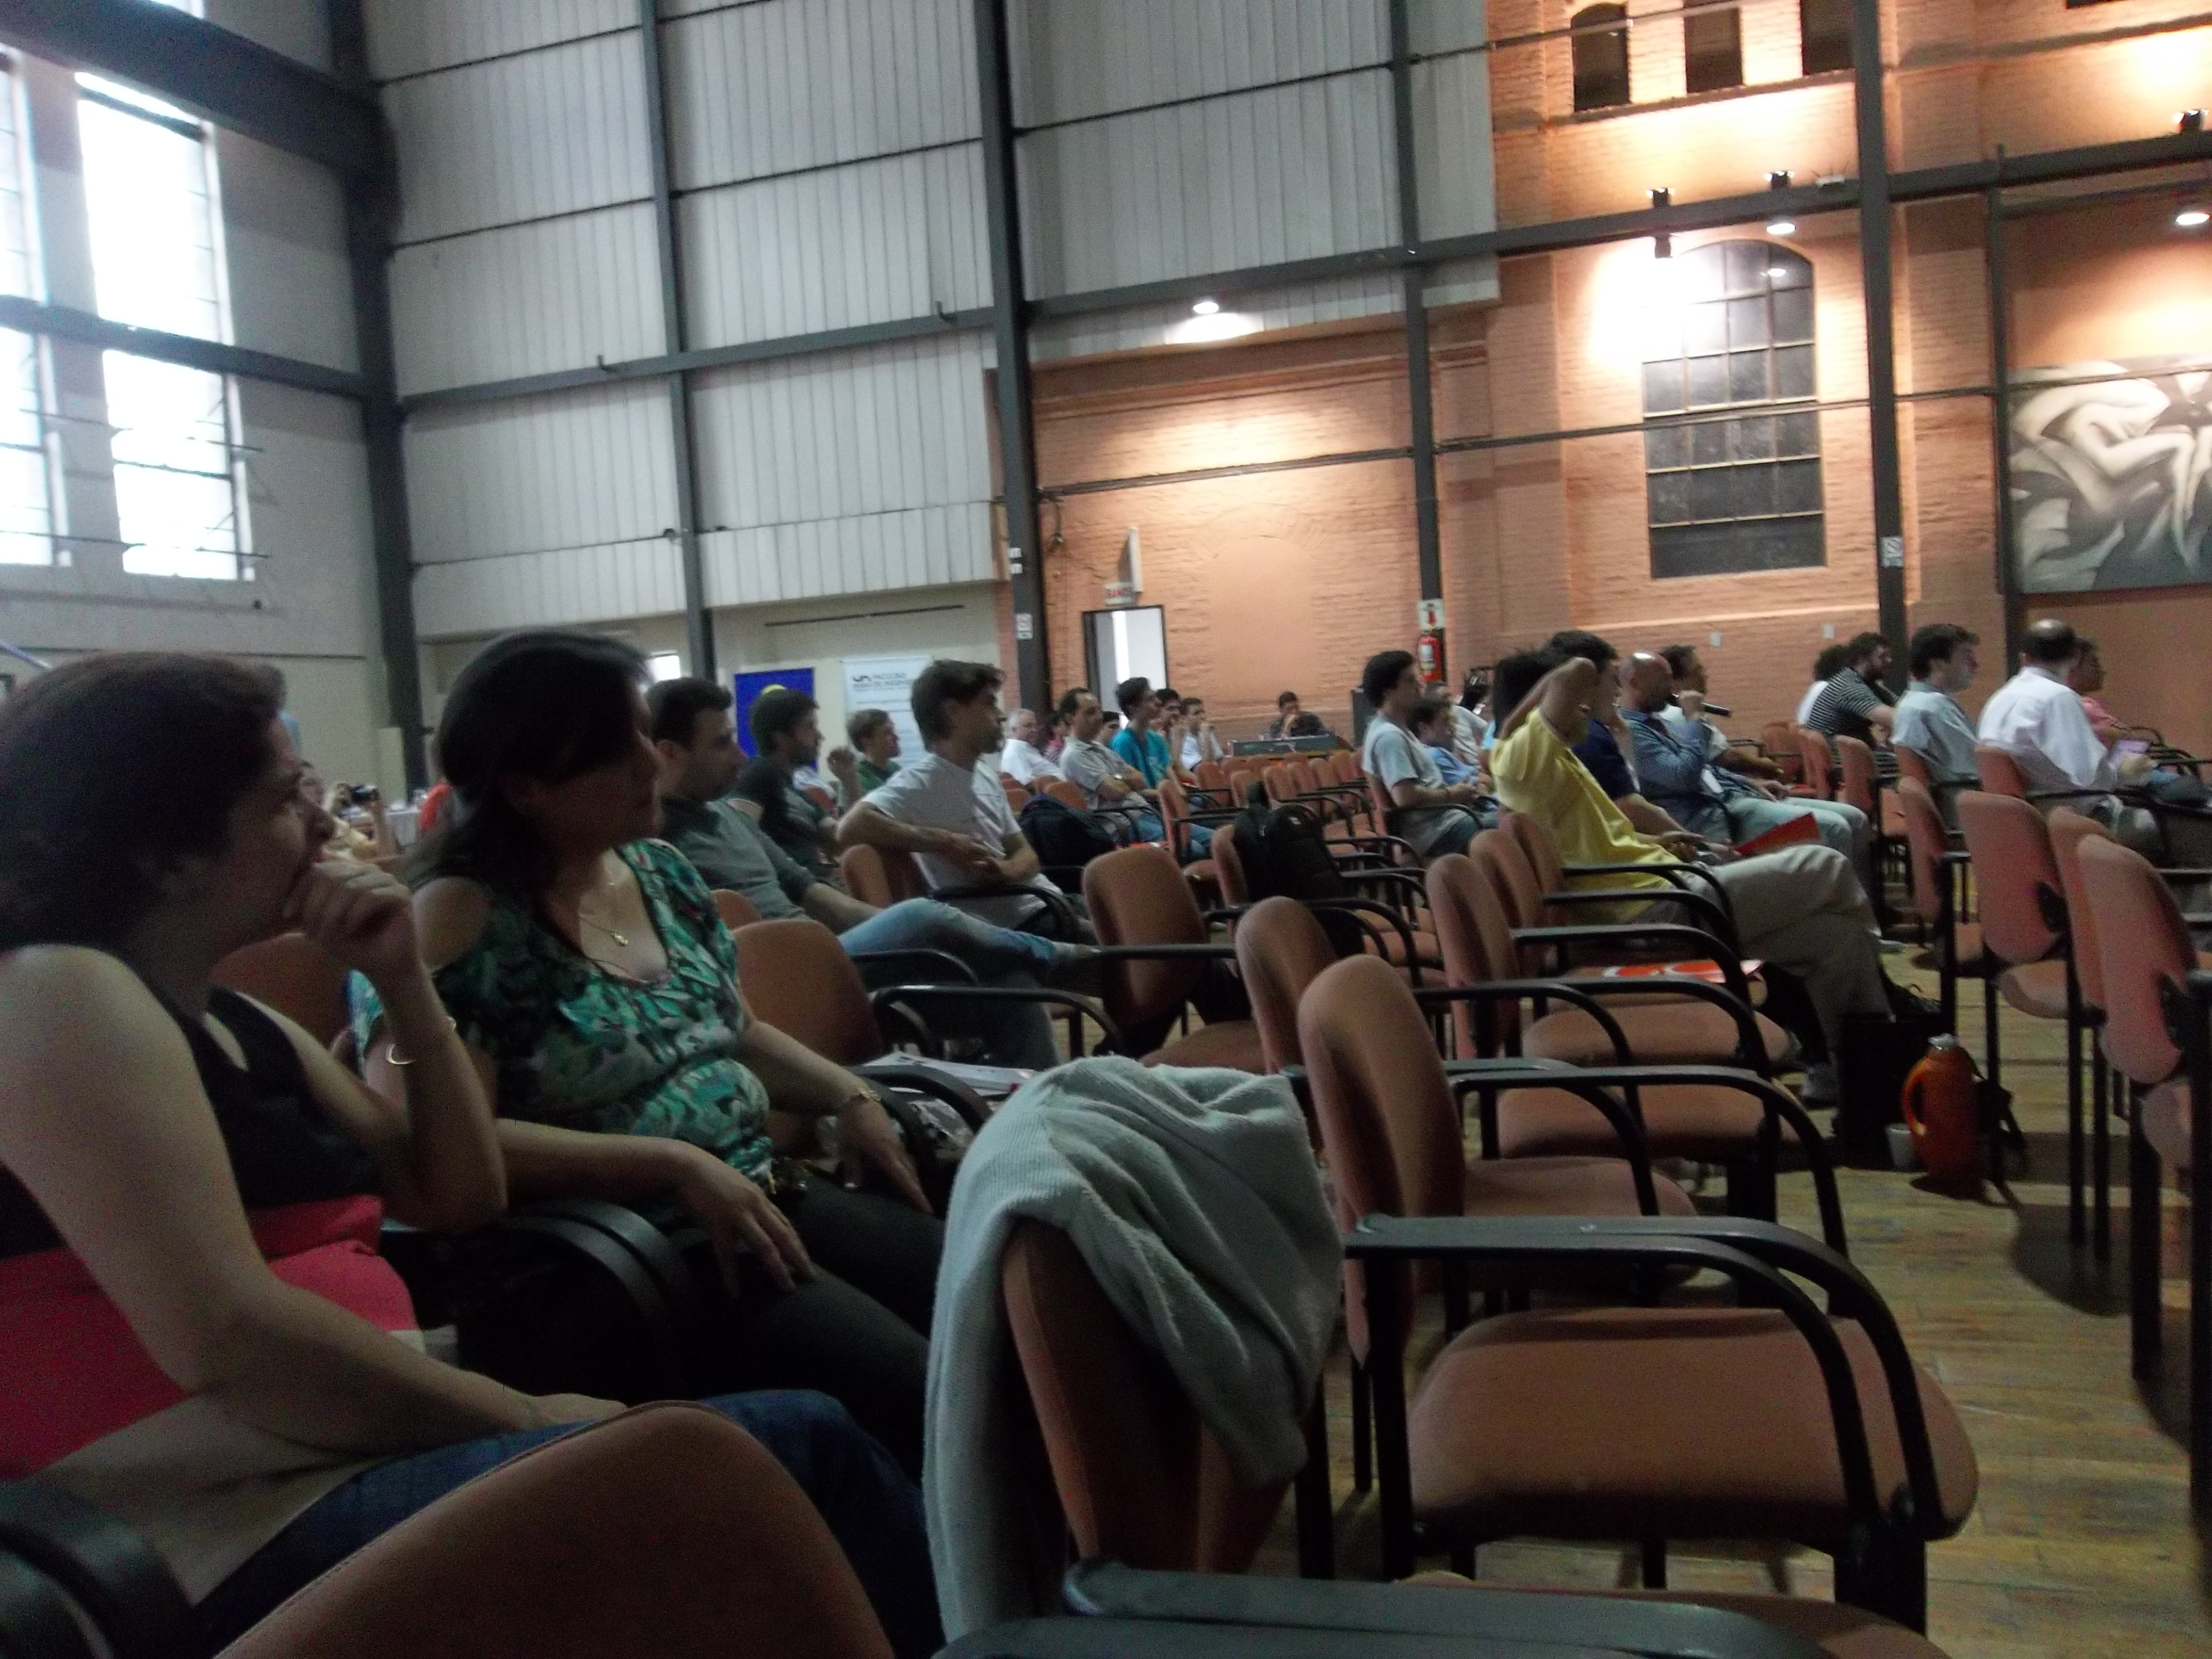 Questions from the audience at CRSL (GUGLER), Vieja Usina, Paraná